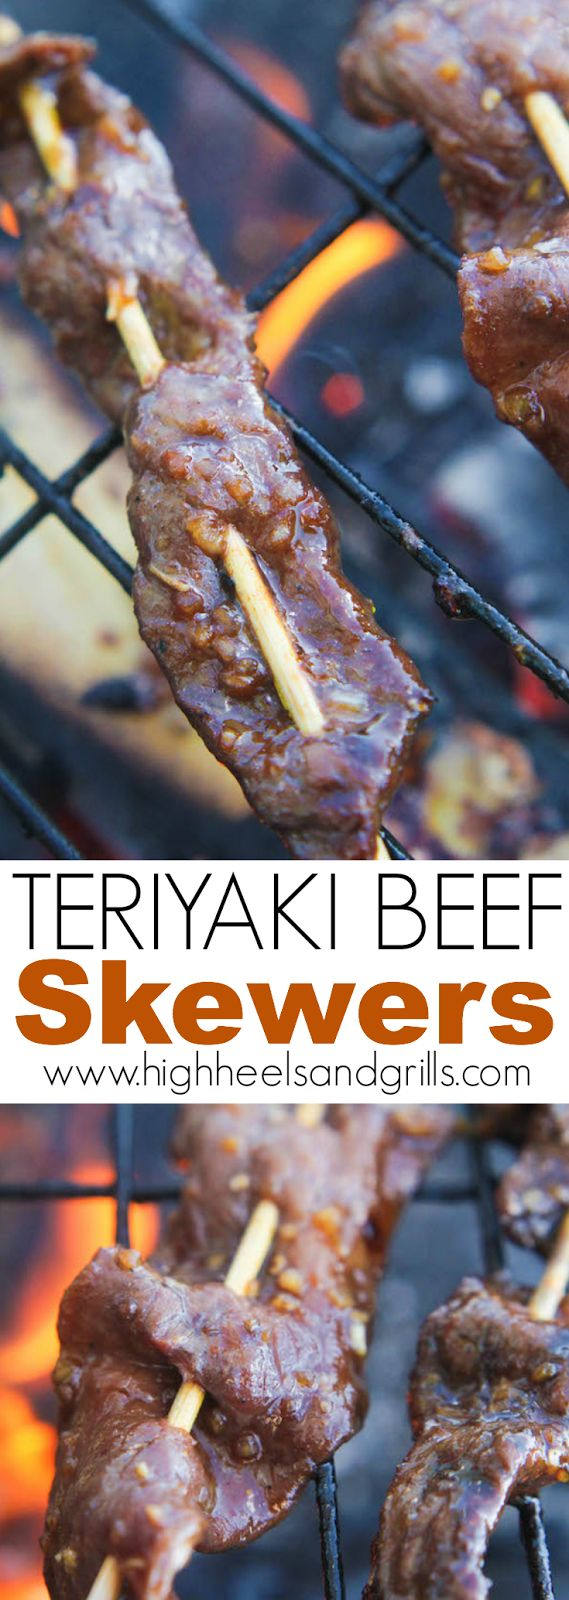 These Teriyaki Beef Skewers are great for grilling season! They are an easy and delicious dinner recipe that are sure to be a crowd pleaser this summer!